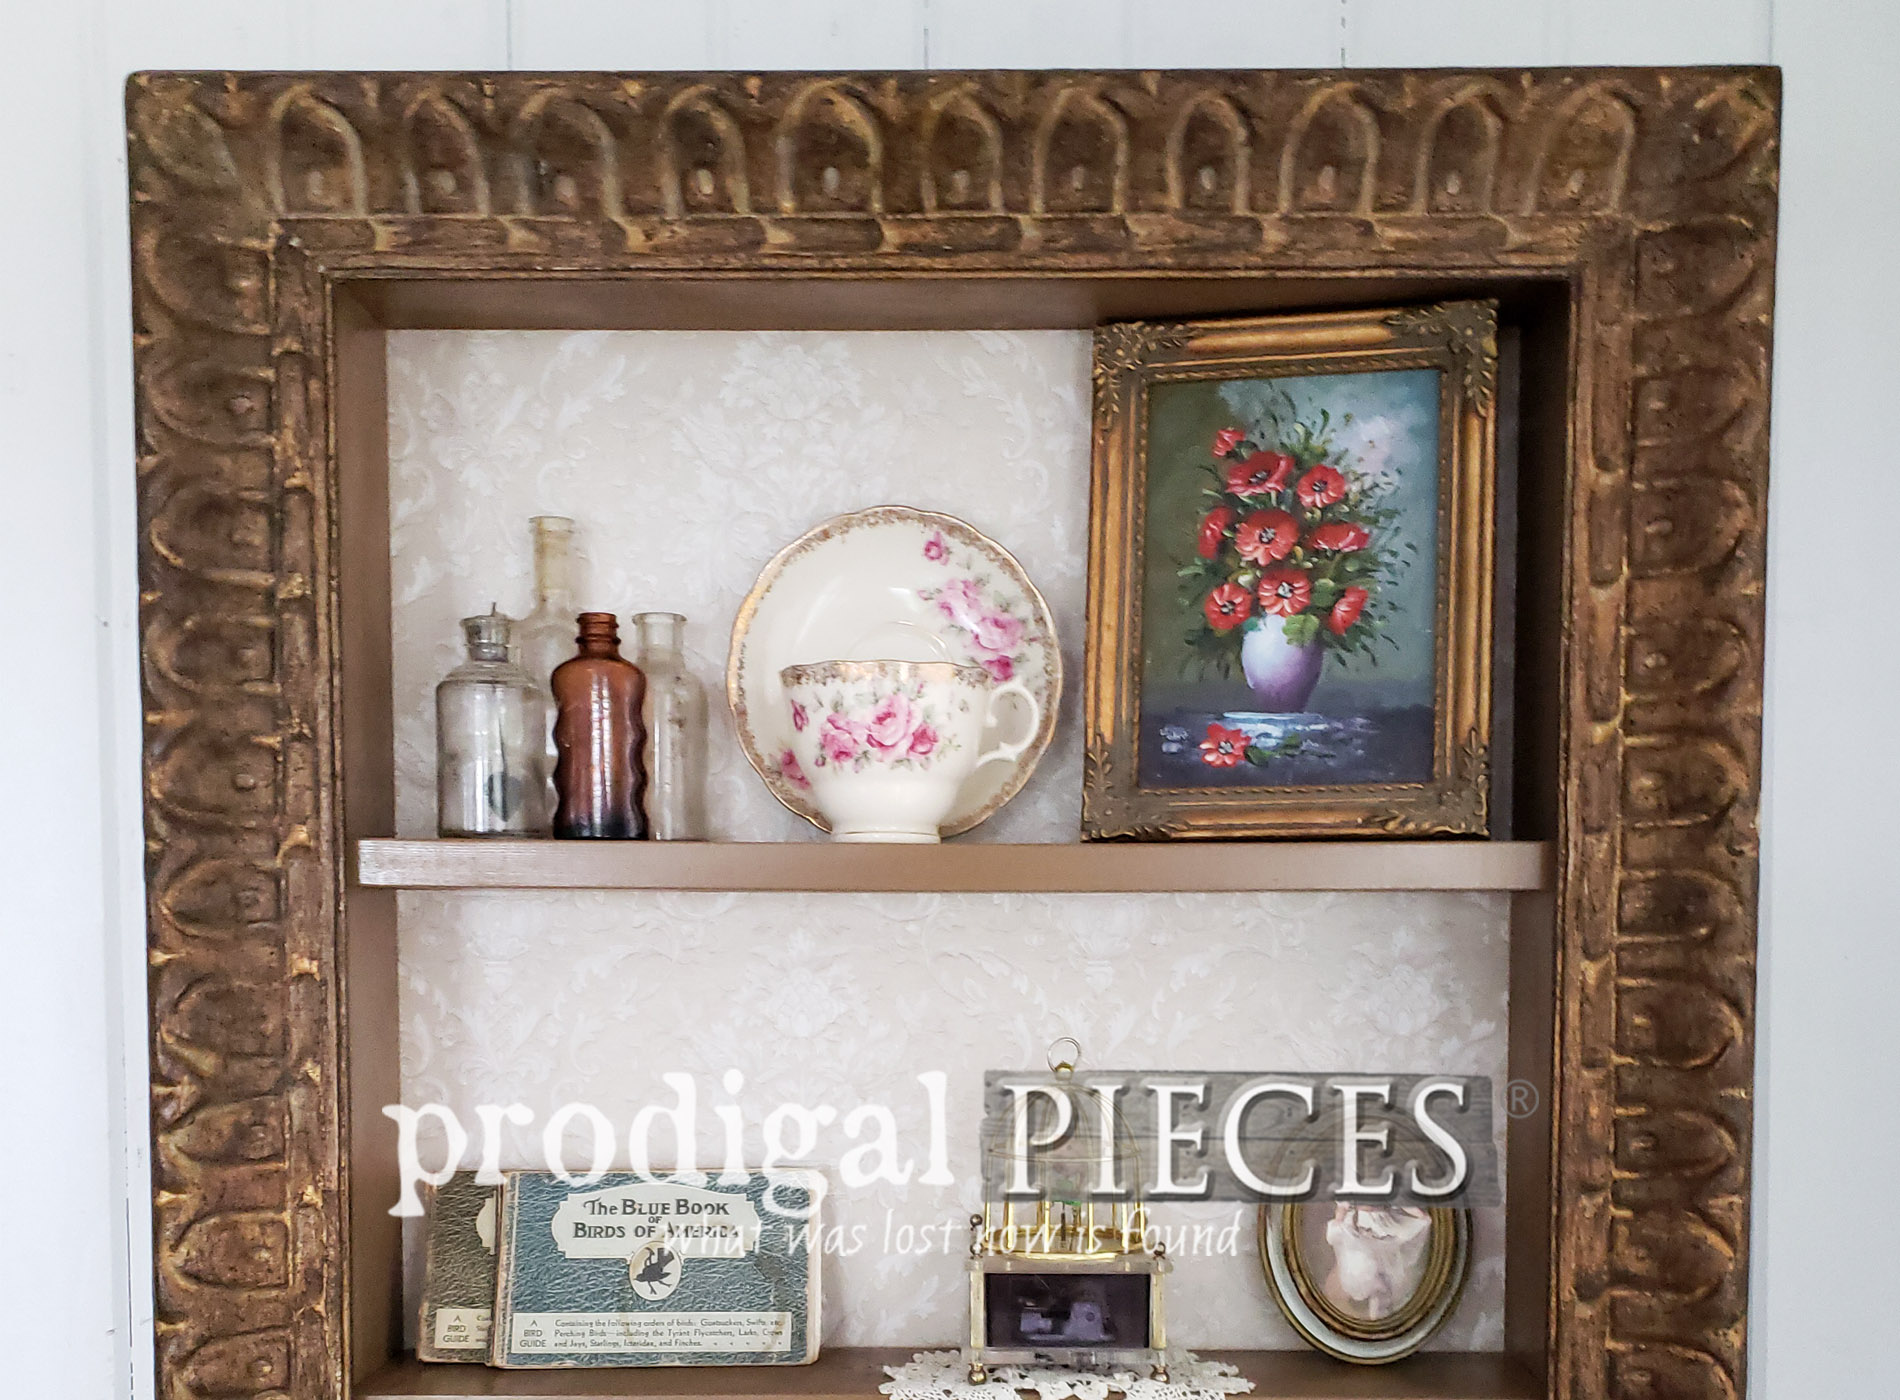 Featured Repurposed Picture Frames Turned Decorative Shelving by Larissa of Prodigal Pieces | prodigalpieces.com